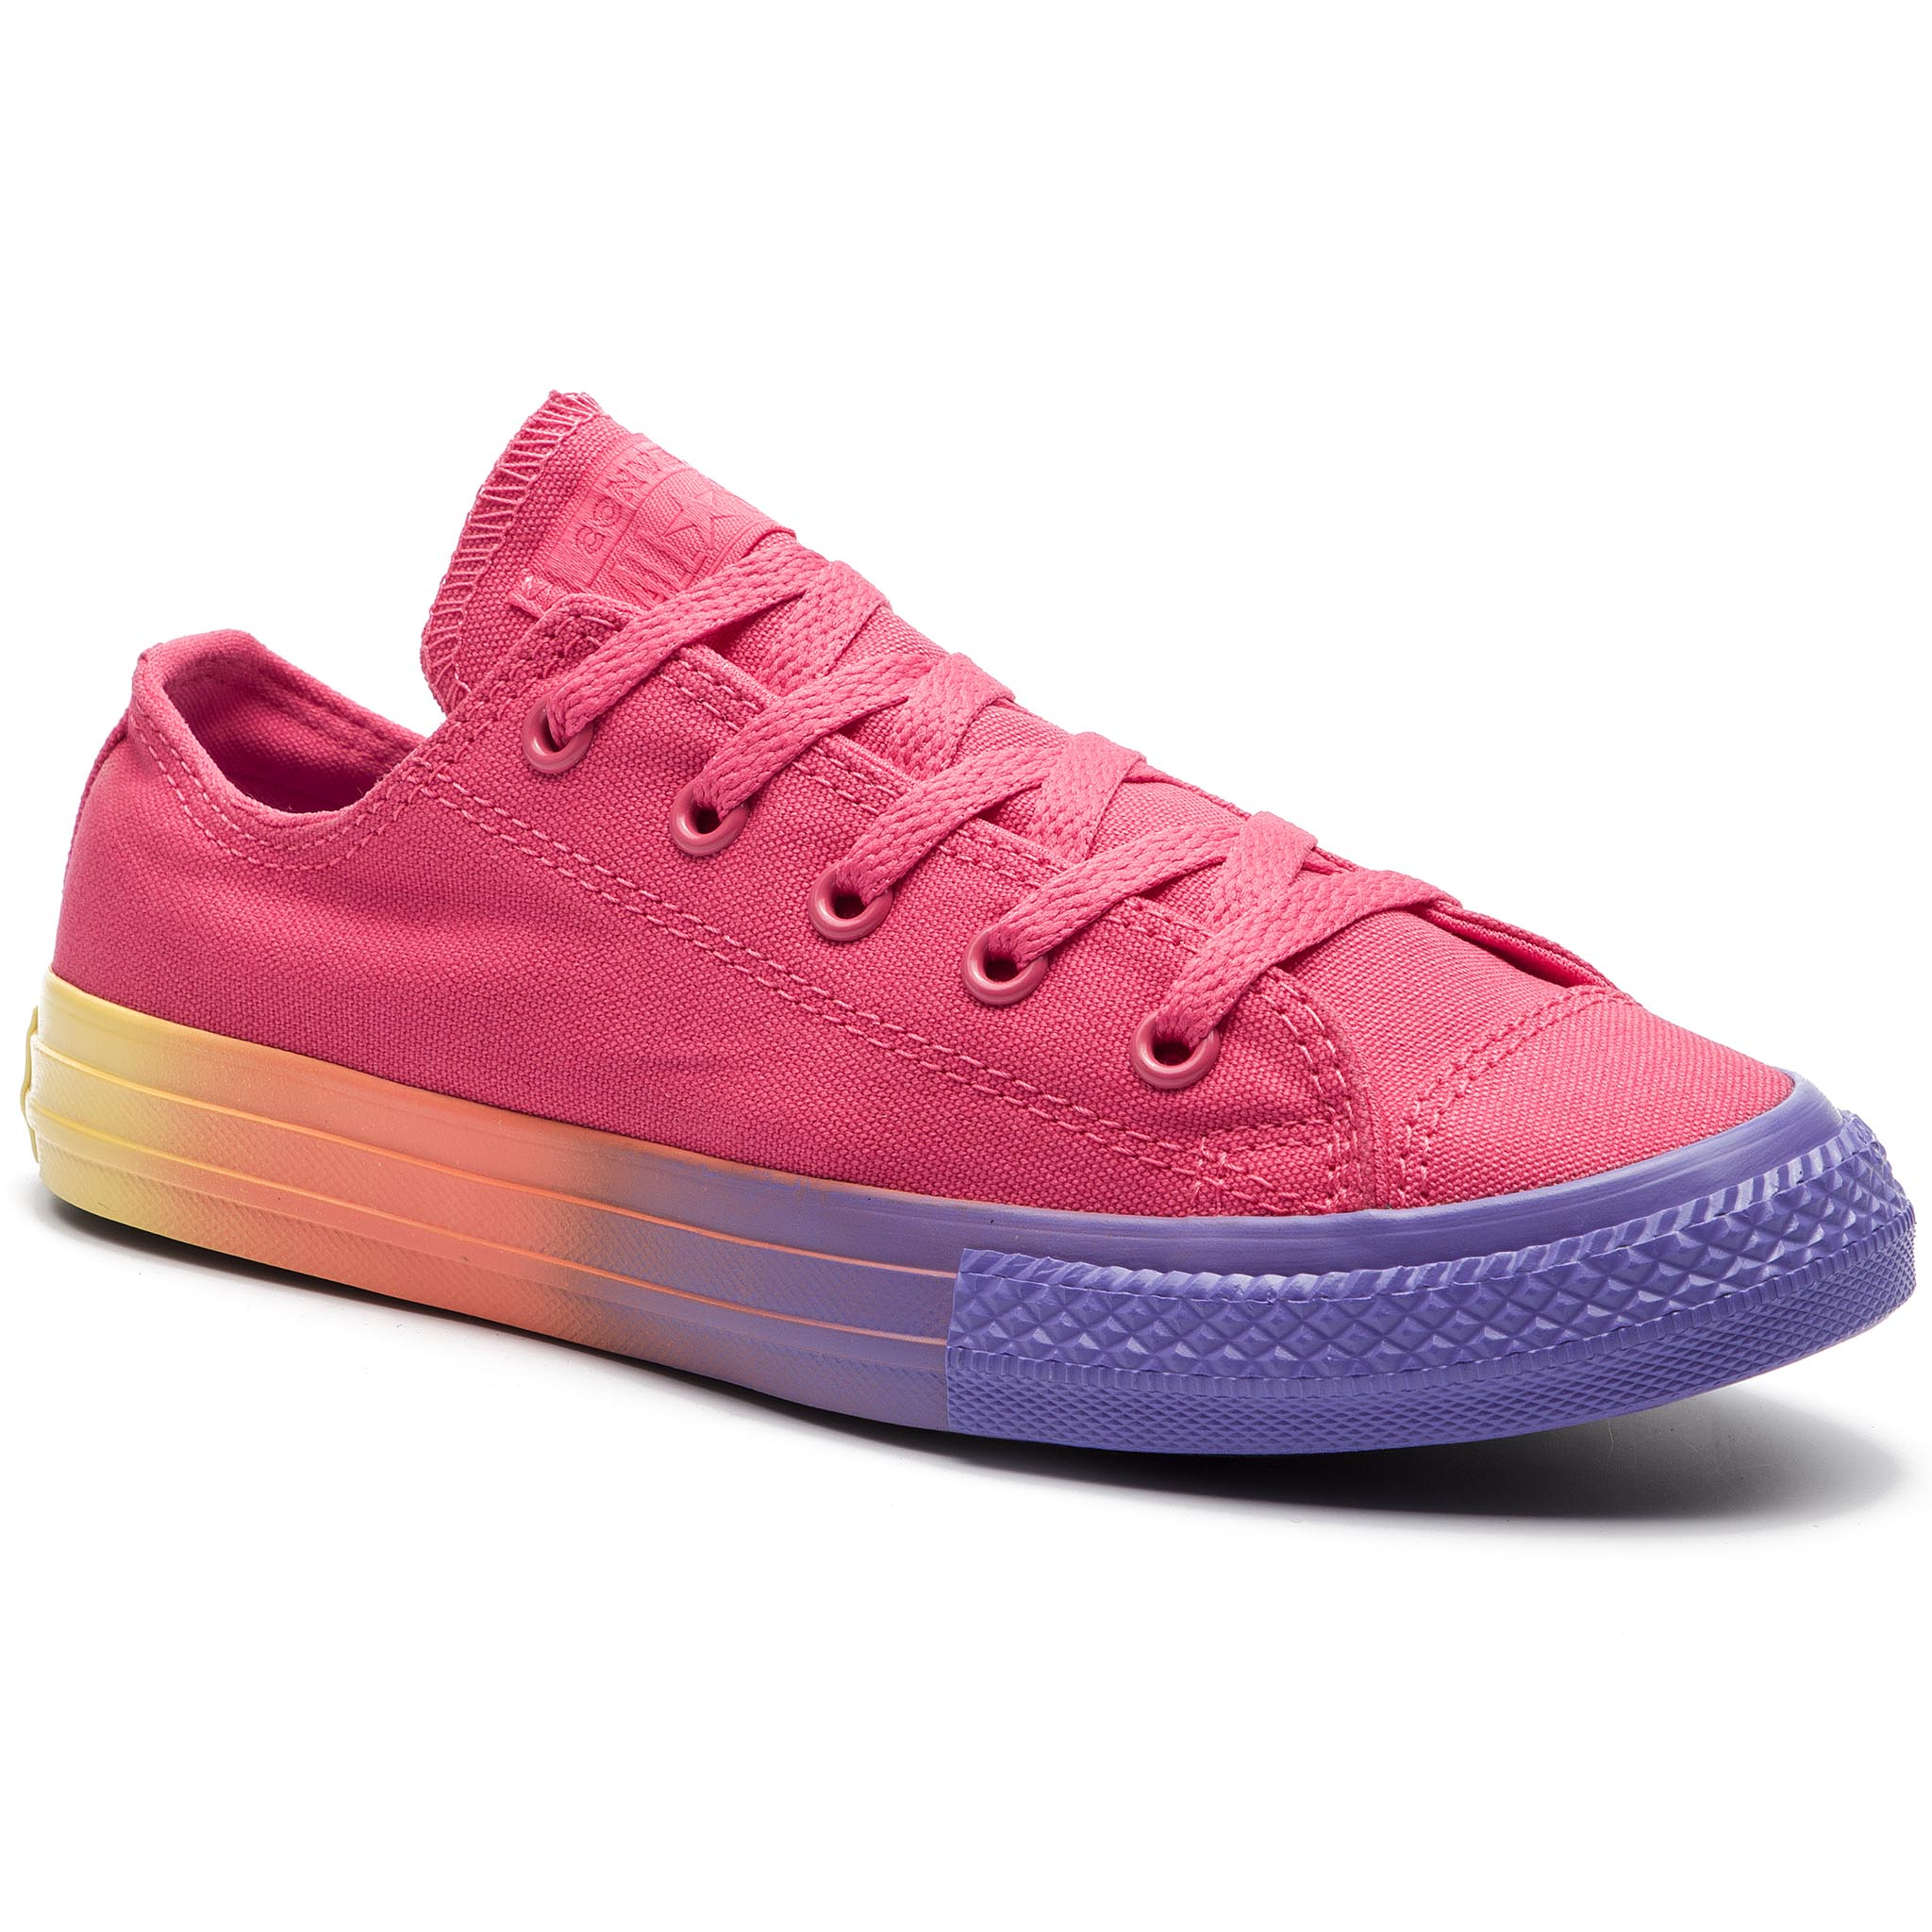 Whire Guess Lea12 Opera Fm7ope Shoes Low Sneakers SqMGUzpV